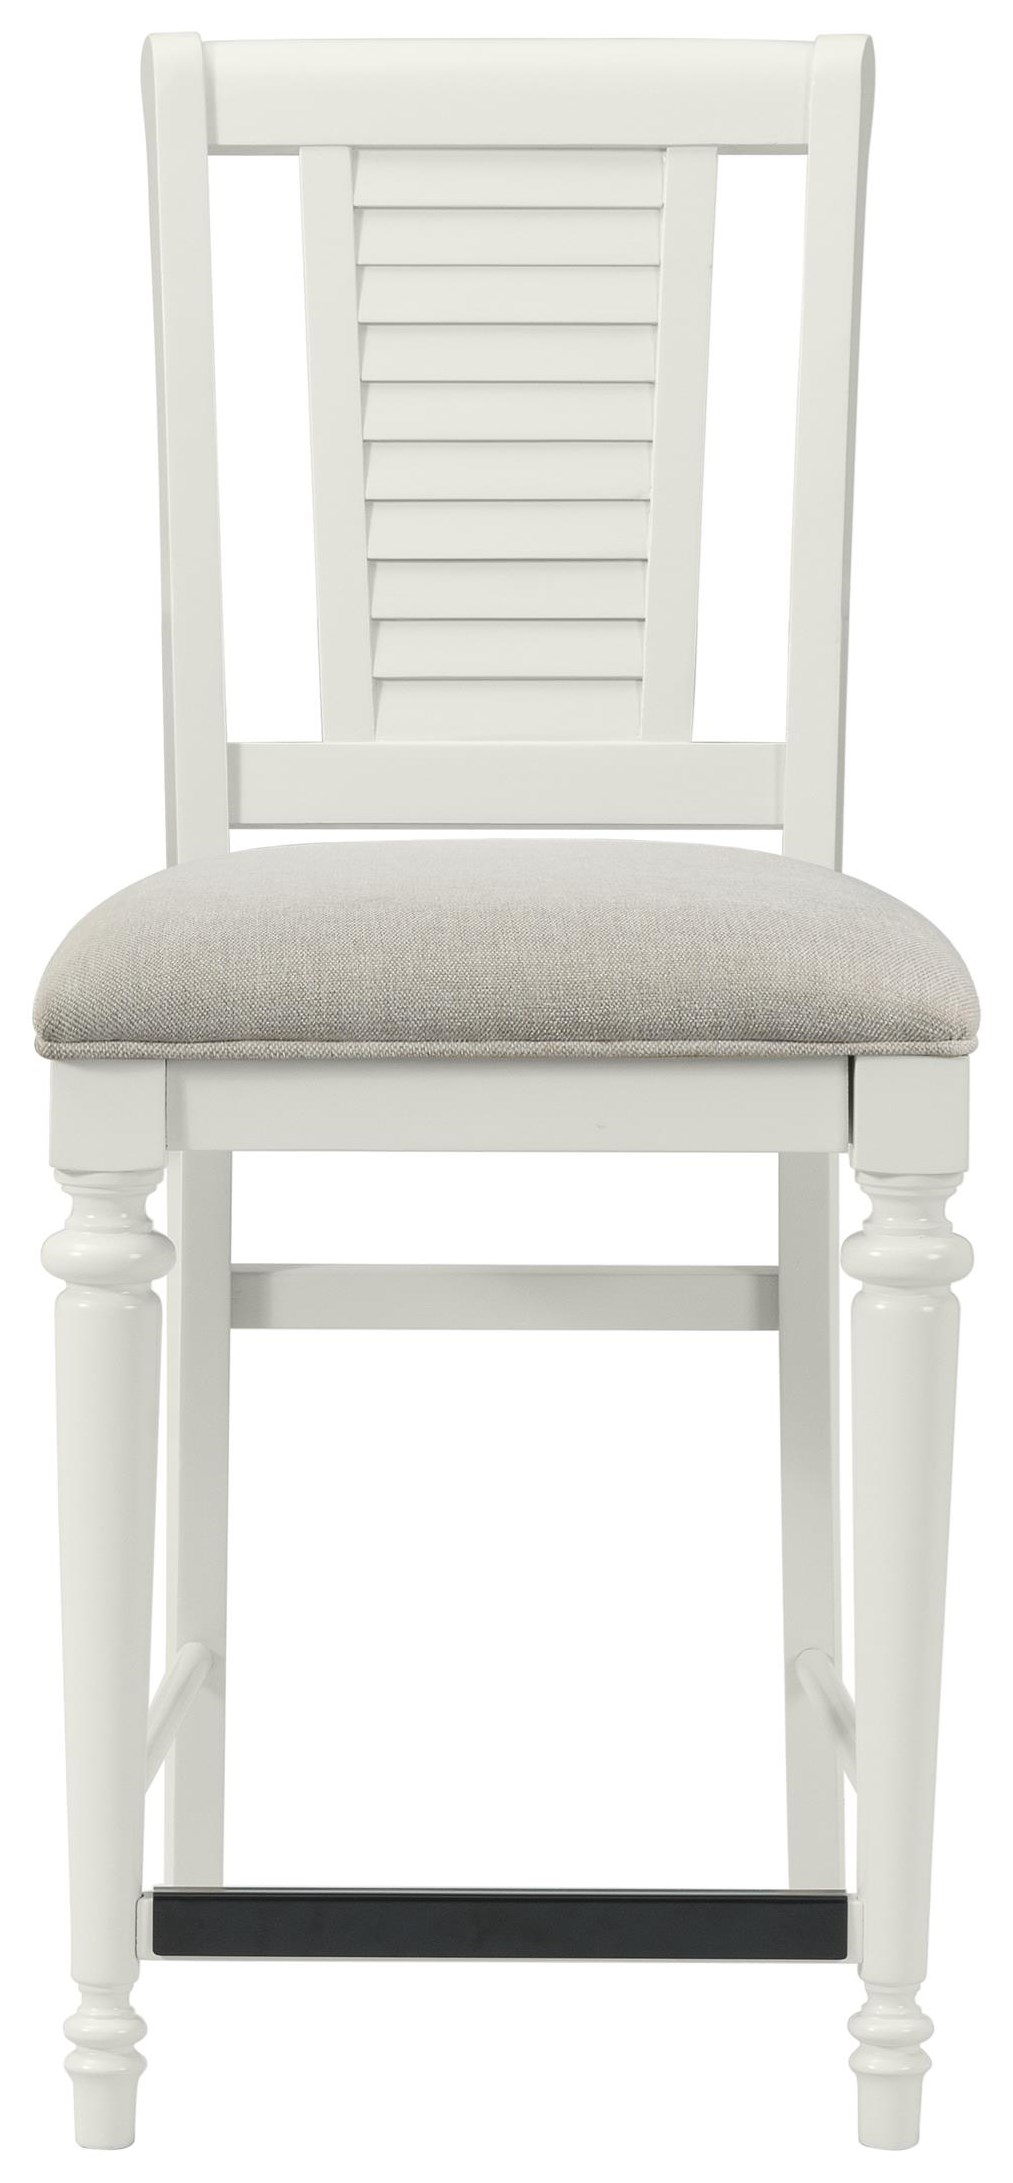 Harbortown Upholstered Counter Stool by Stillwater Furniture at Baer's Furniture